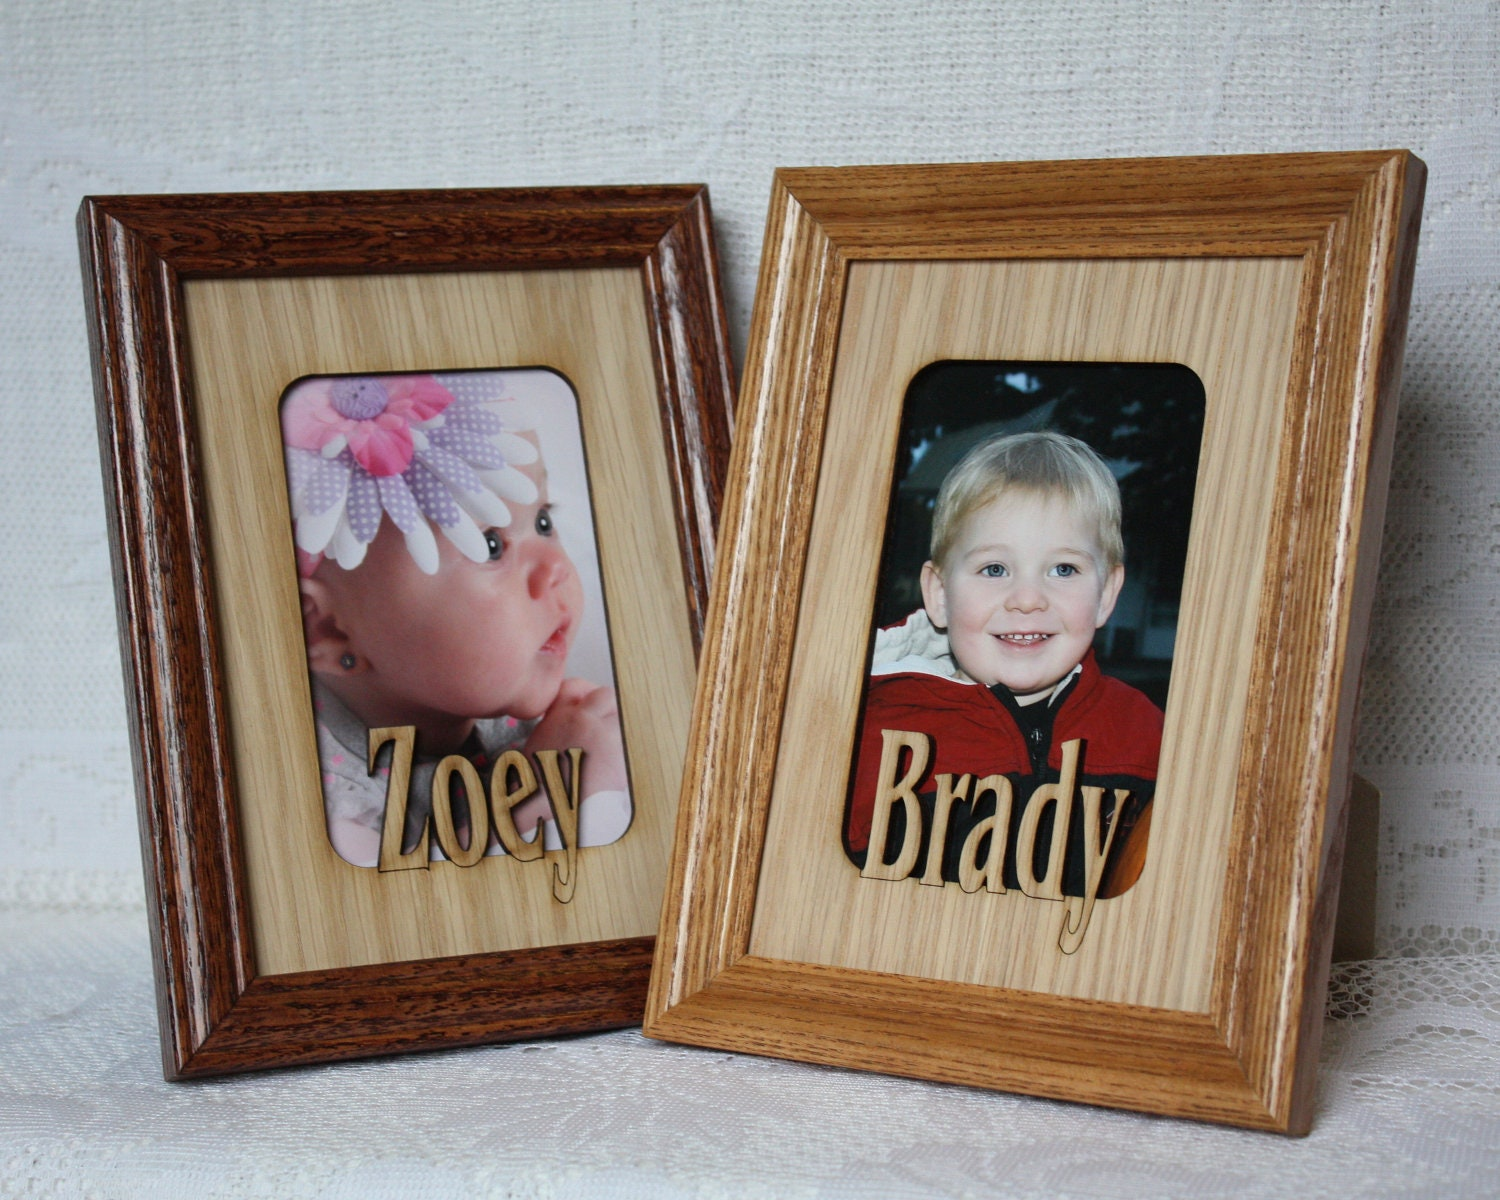 5x7 custom name personalized picture frame mat by jennysframeworks. Black Bedroom Furniture Sets. Home Design Ideas